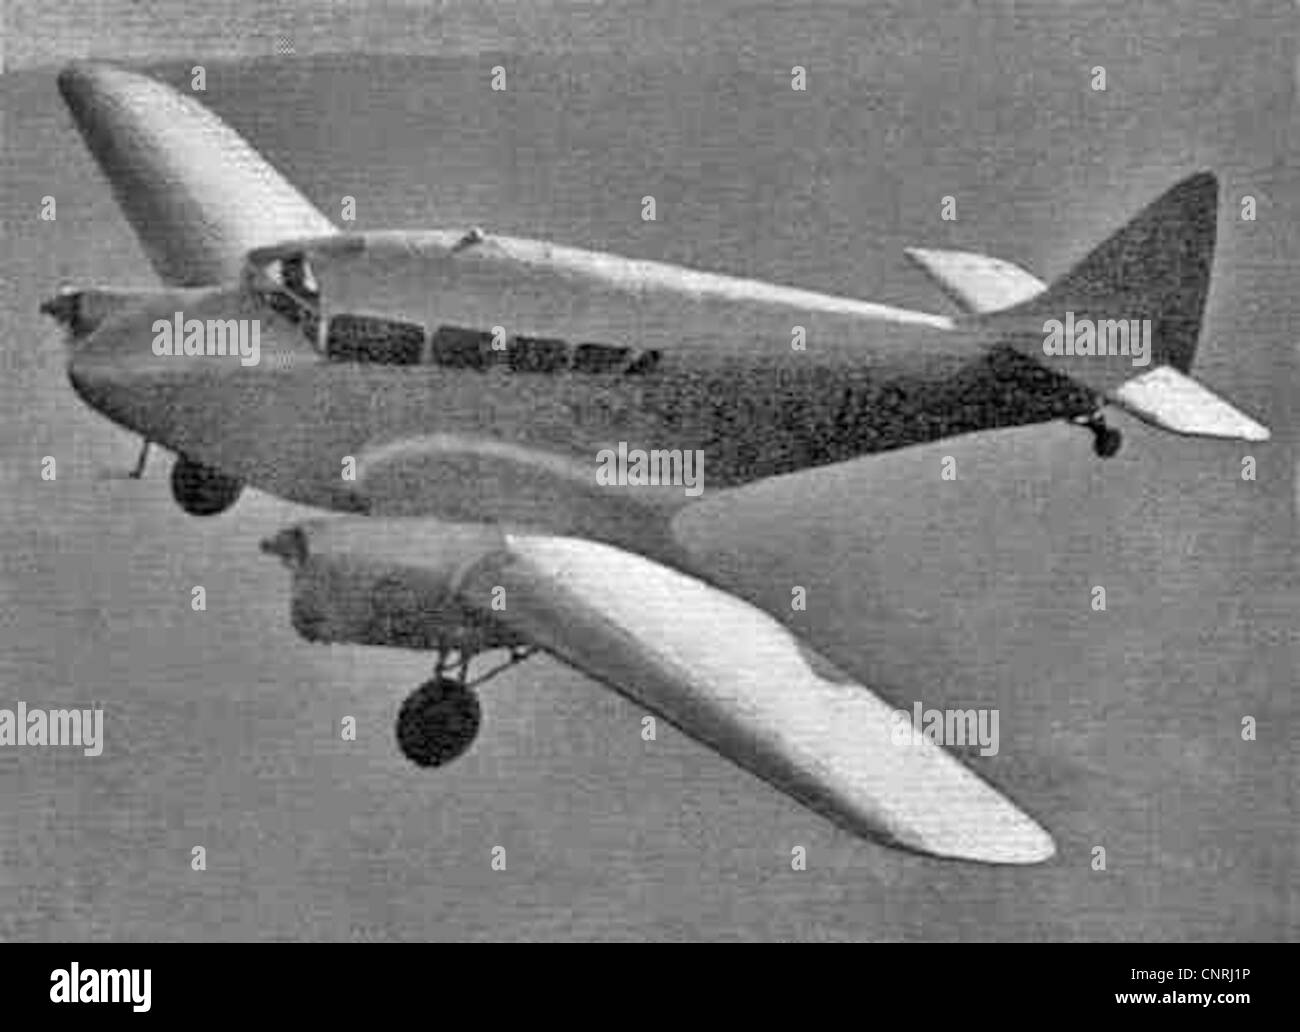 Miles Peregrine in flight with retractable undercarriage lowered - Stock Image